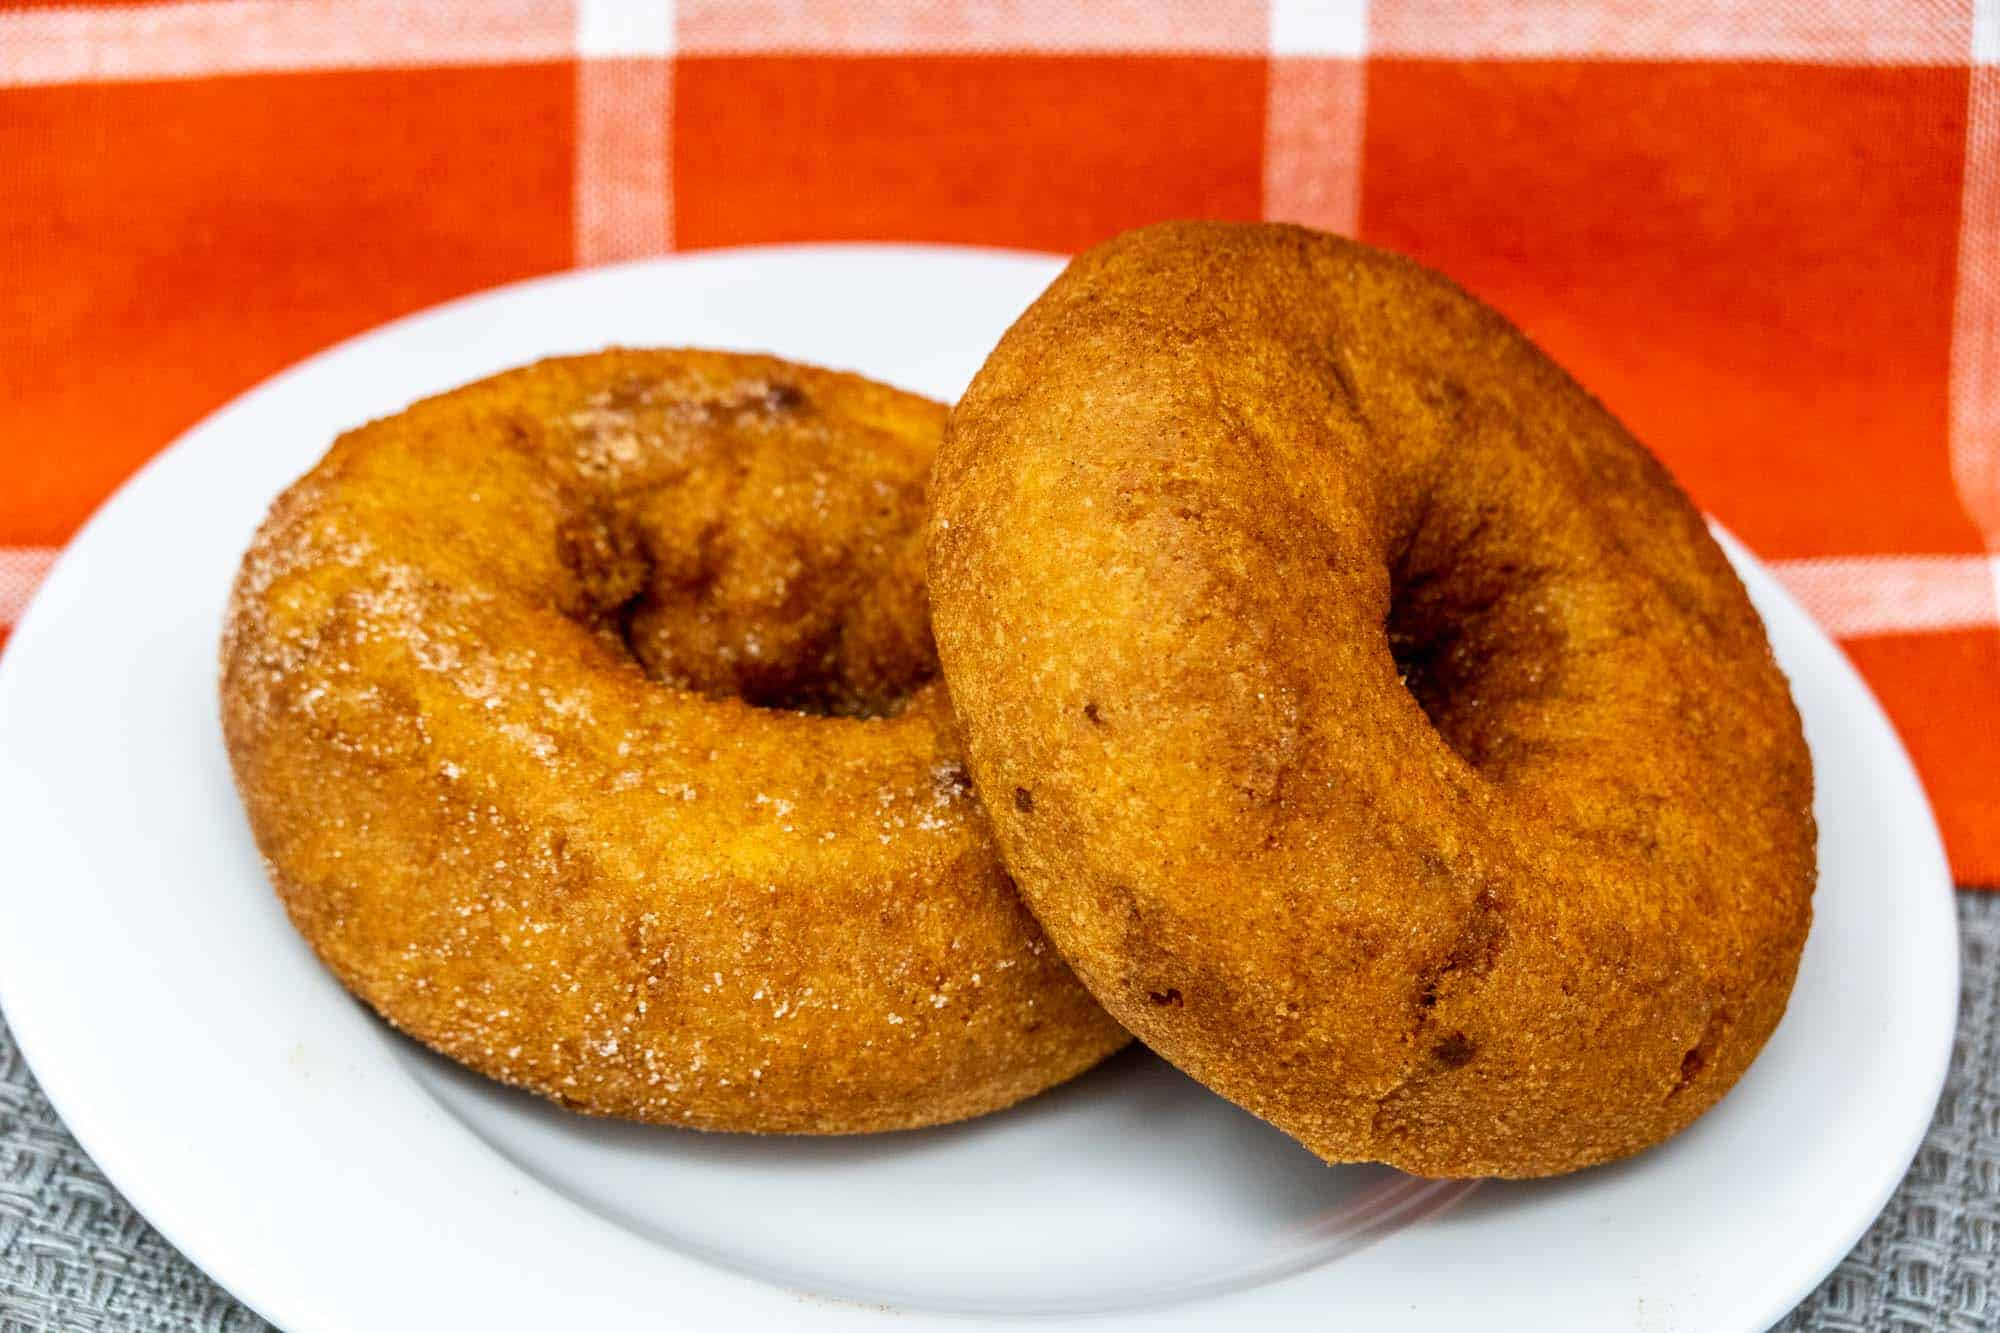 Two donuts on a plate